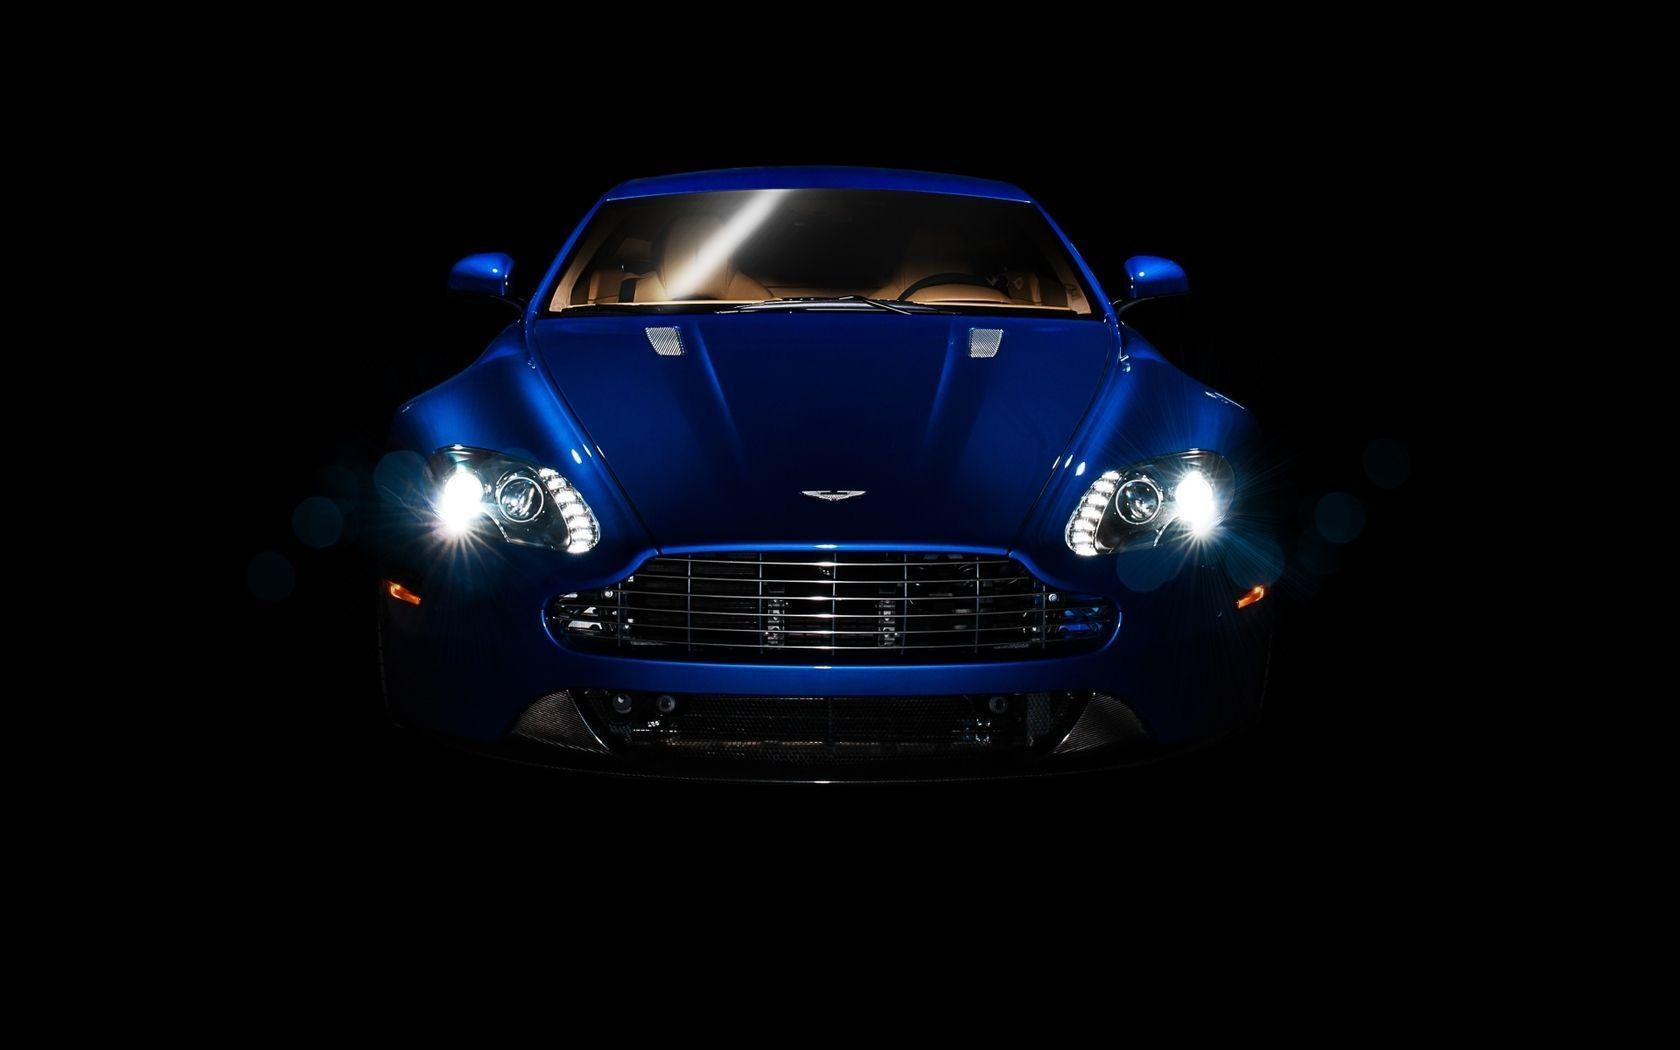 Aston martin blue car wallpapers in 1680×1050 resolution of 330720